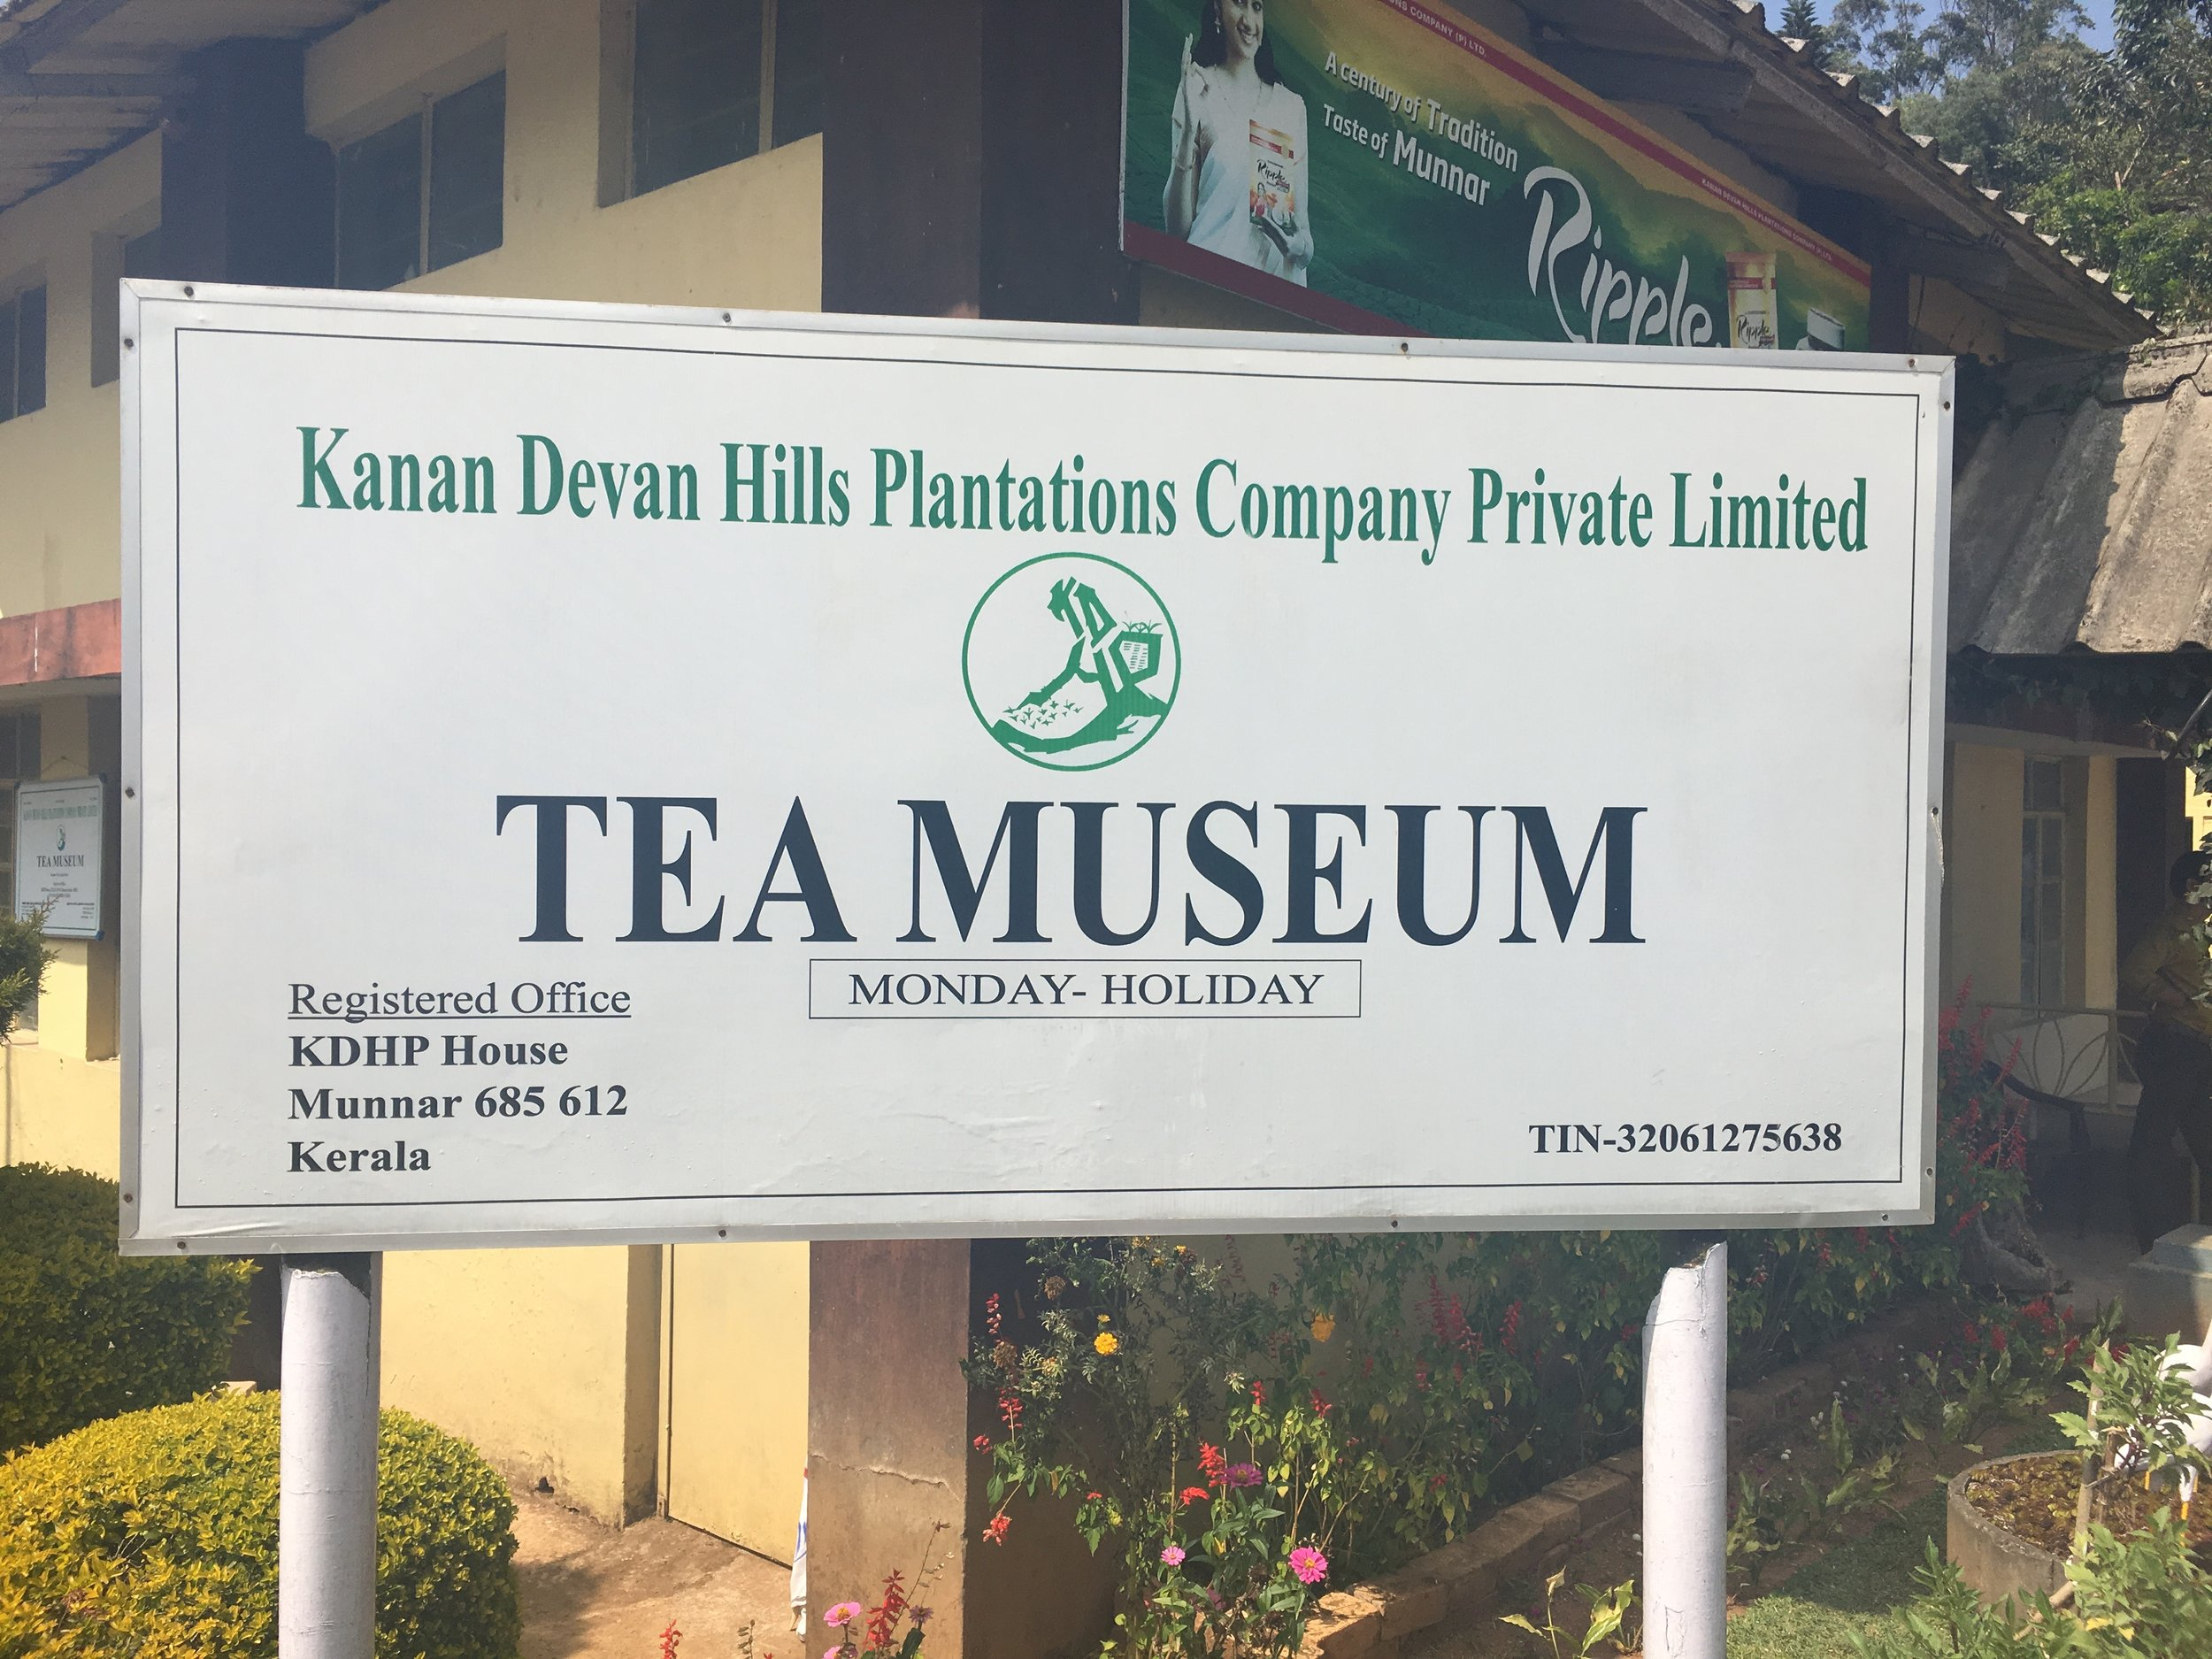 Today we visited the Kanan Devan Hills Plantation Company (Private Limited) and saw how tea is grown and harvested. When the TaTa corporation decided to leave the plantation, they did an amazing thing: They gave the workers a share in the business.